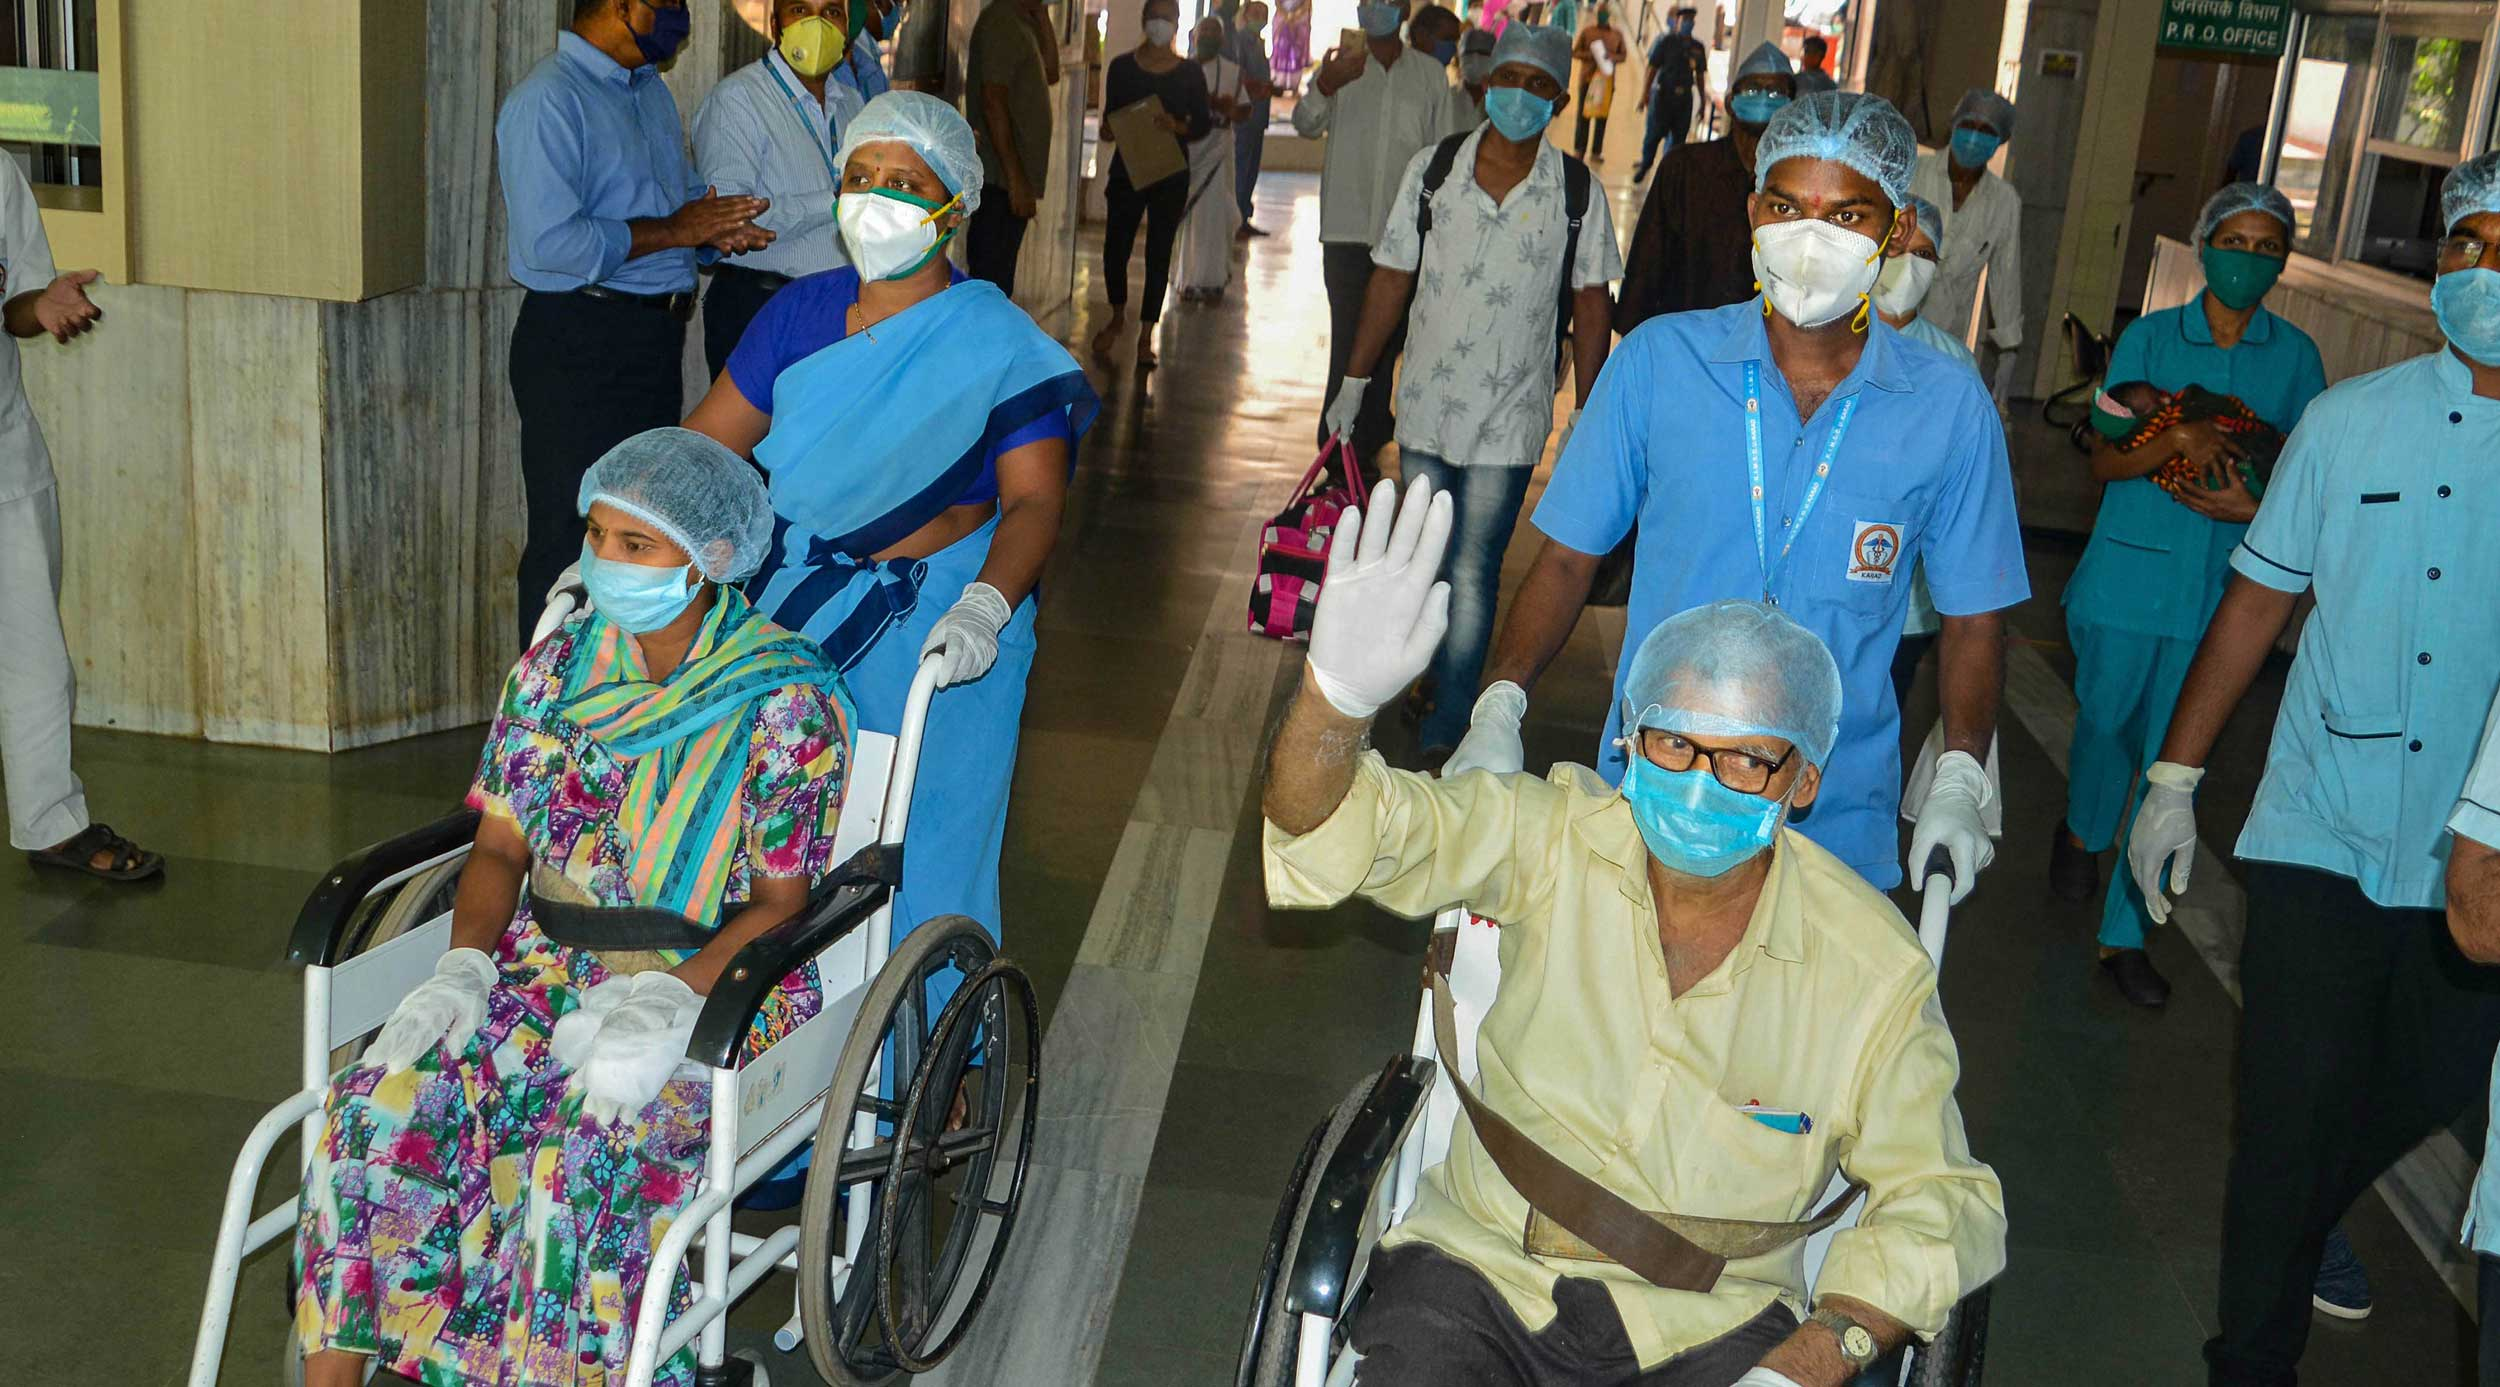 Medics and hospital staff applaud as patients who recovered from Covid-19 prepare to leave a hospital in Karad on Wednesday.